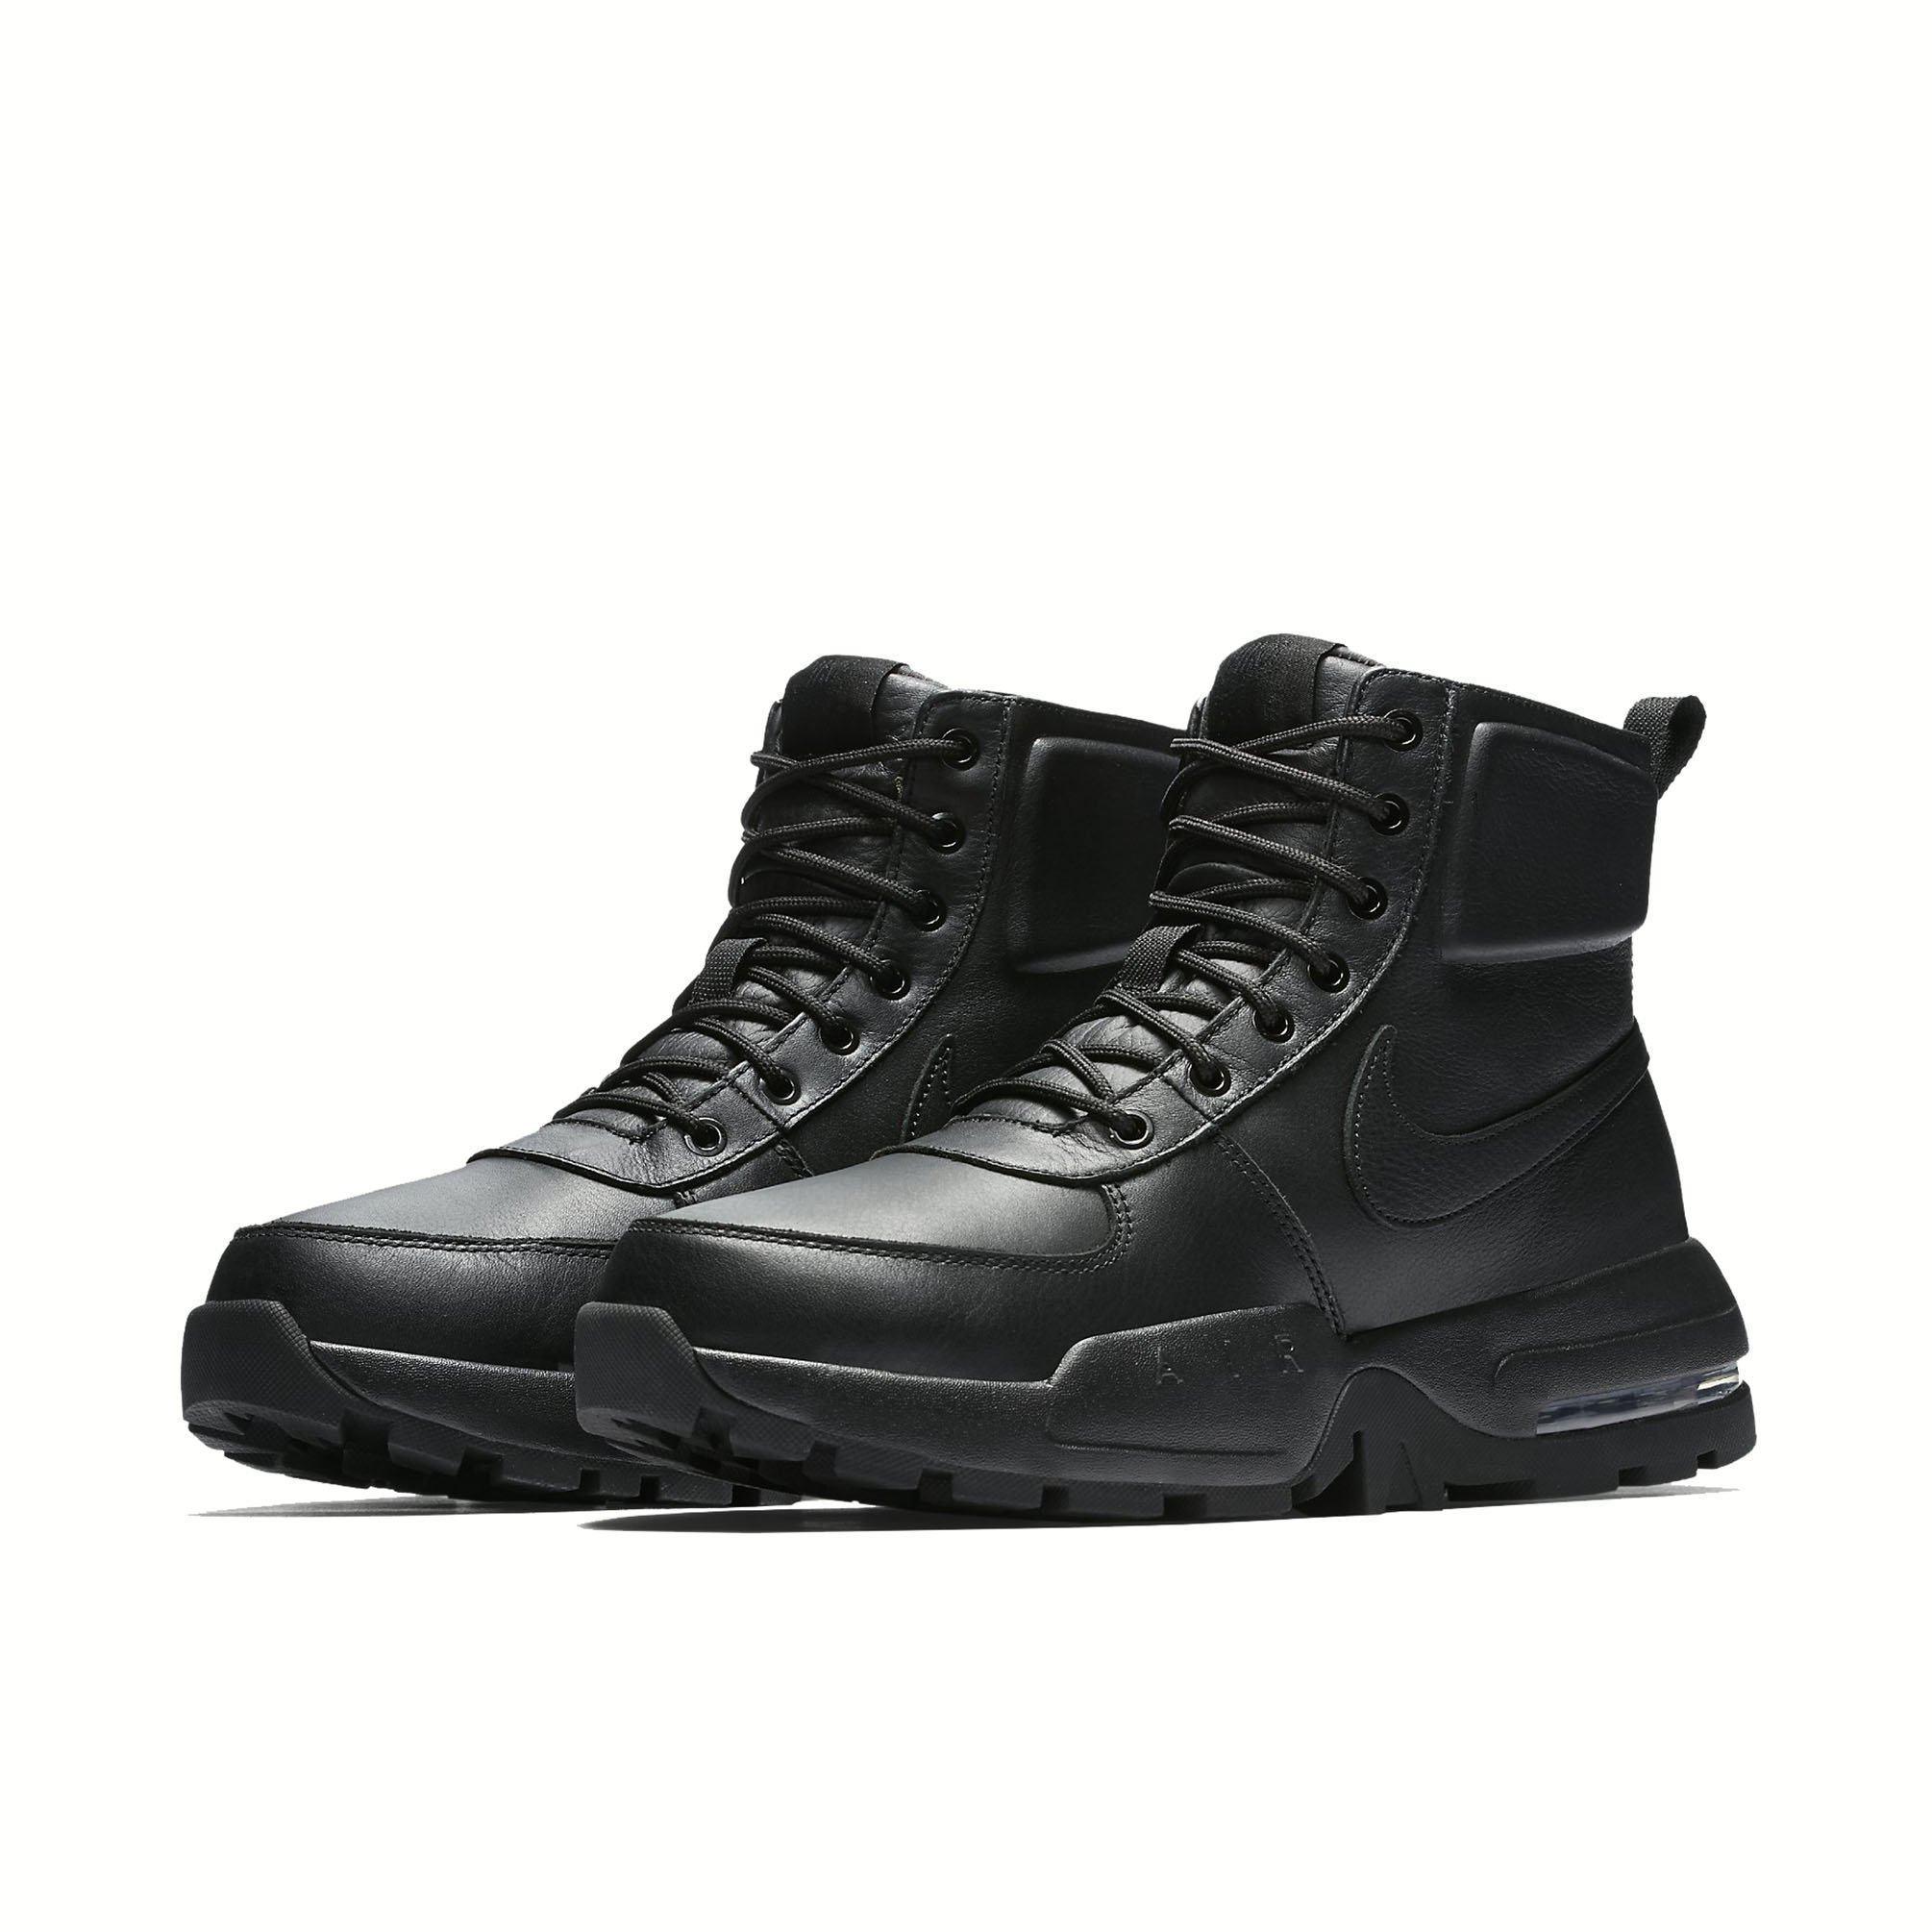 81225ab675 Galleon - Nike Mens Air Max Goaterra 2. 0 ACG Boots Black/Black 916816-001 Size  11. 5